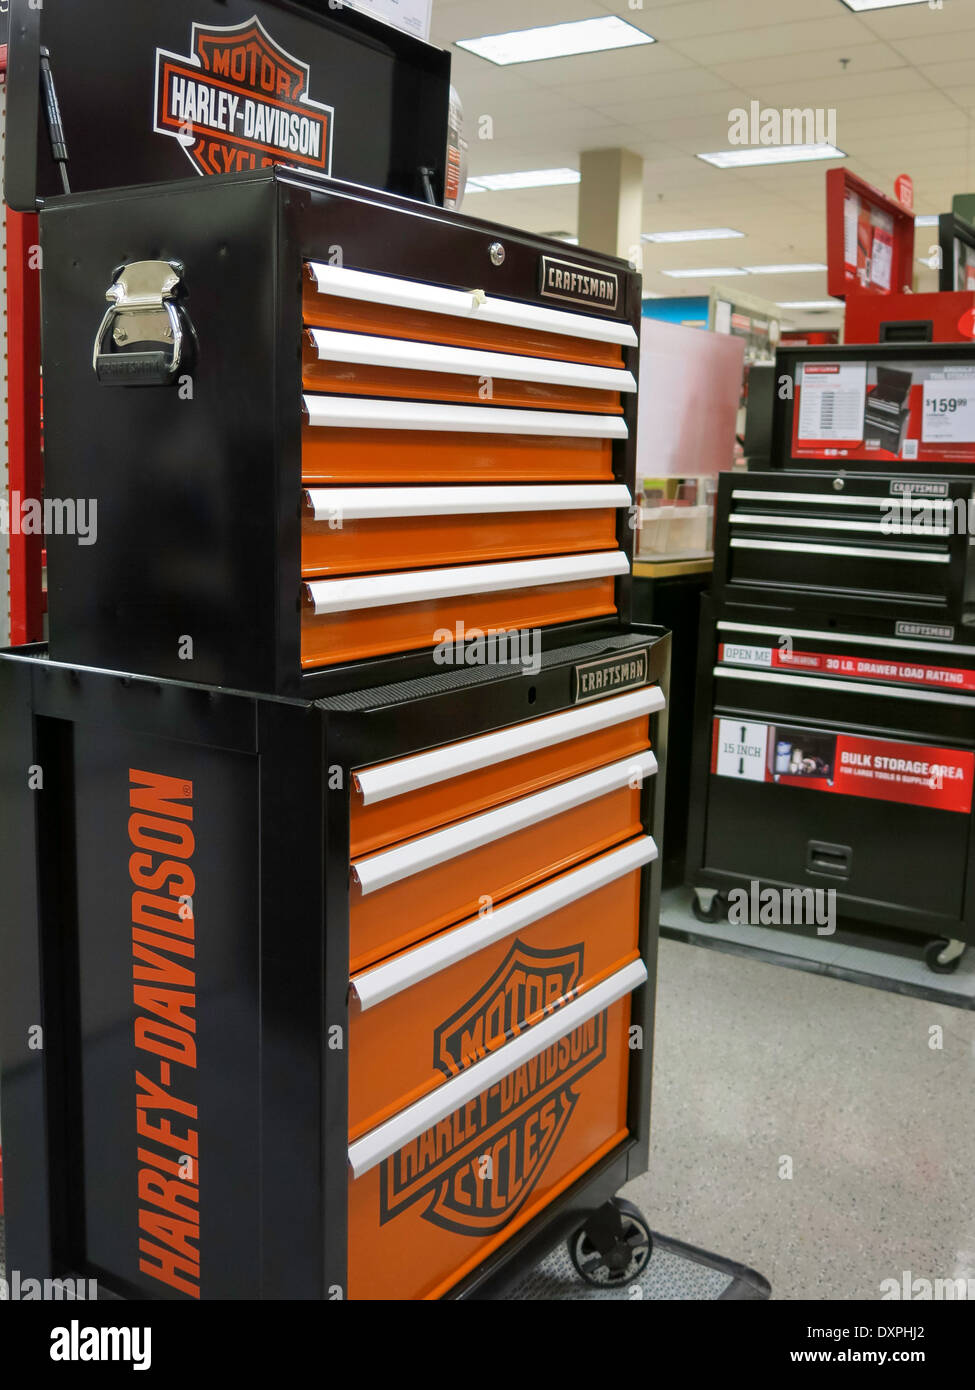 Harley-Davidson Specialty Branded Tool Chest, Sears Store Tool ...